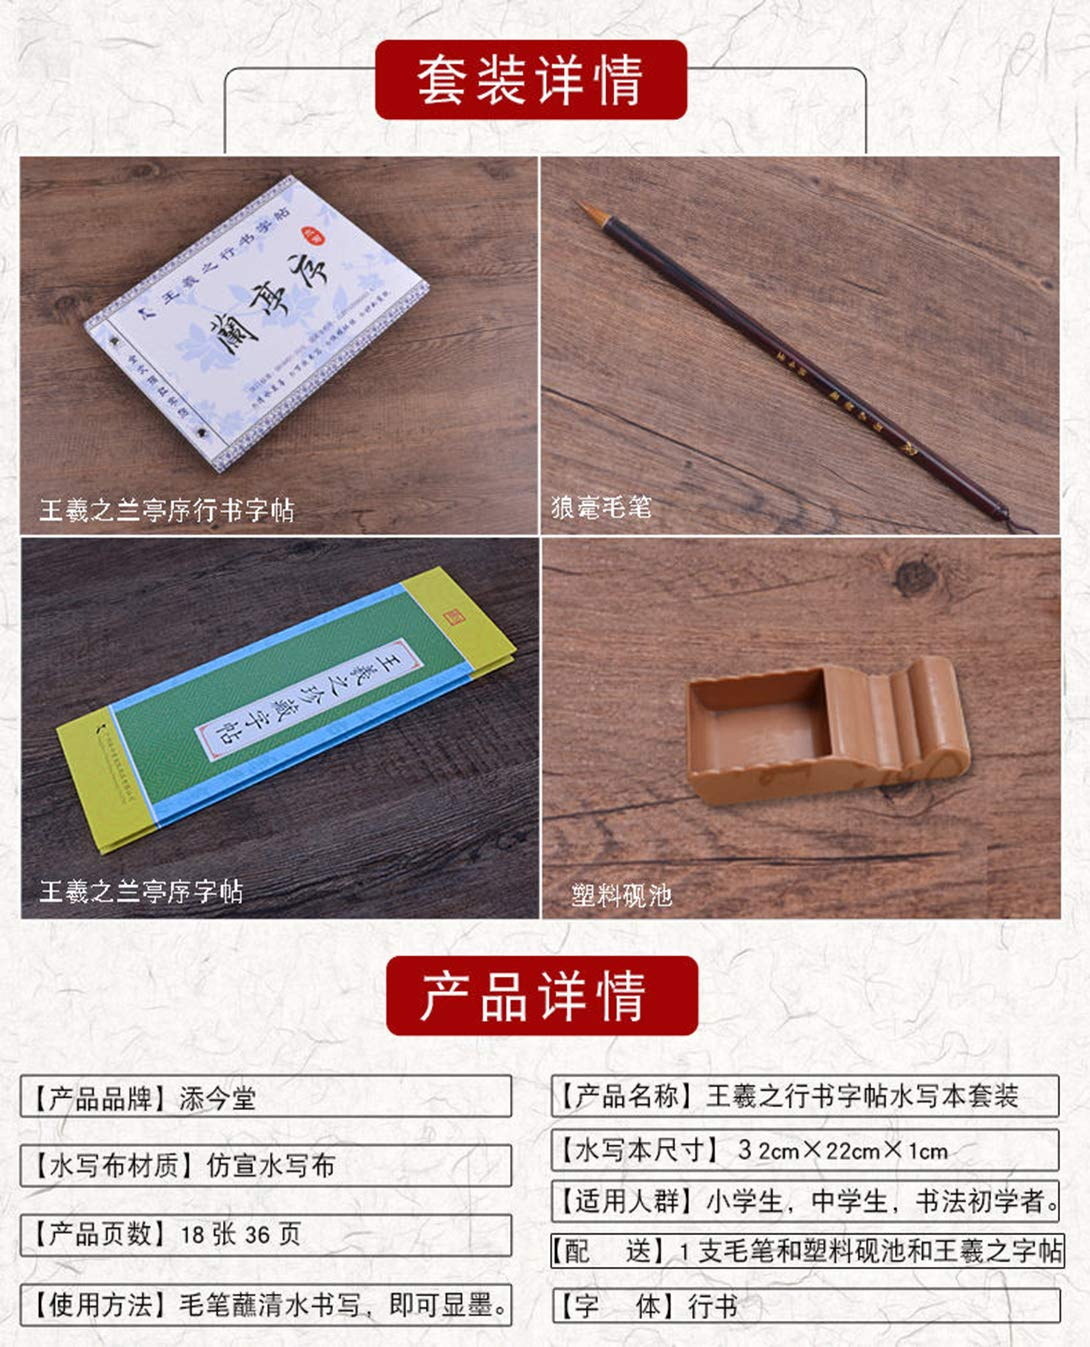 Tianjintang Rewritable Chinese Calligraphy Water Writing Magic Book Set for Learner Wang Xizhi 王羲之 The Orchid Pavilion 兰亭序